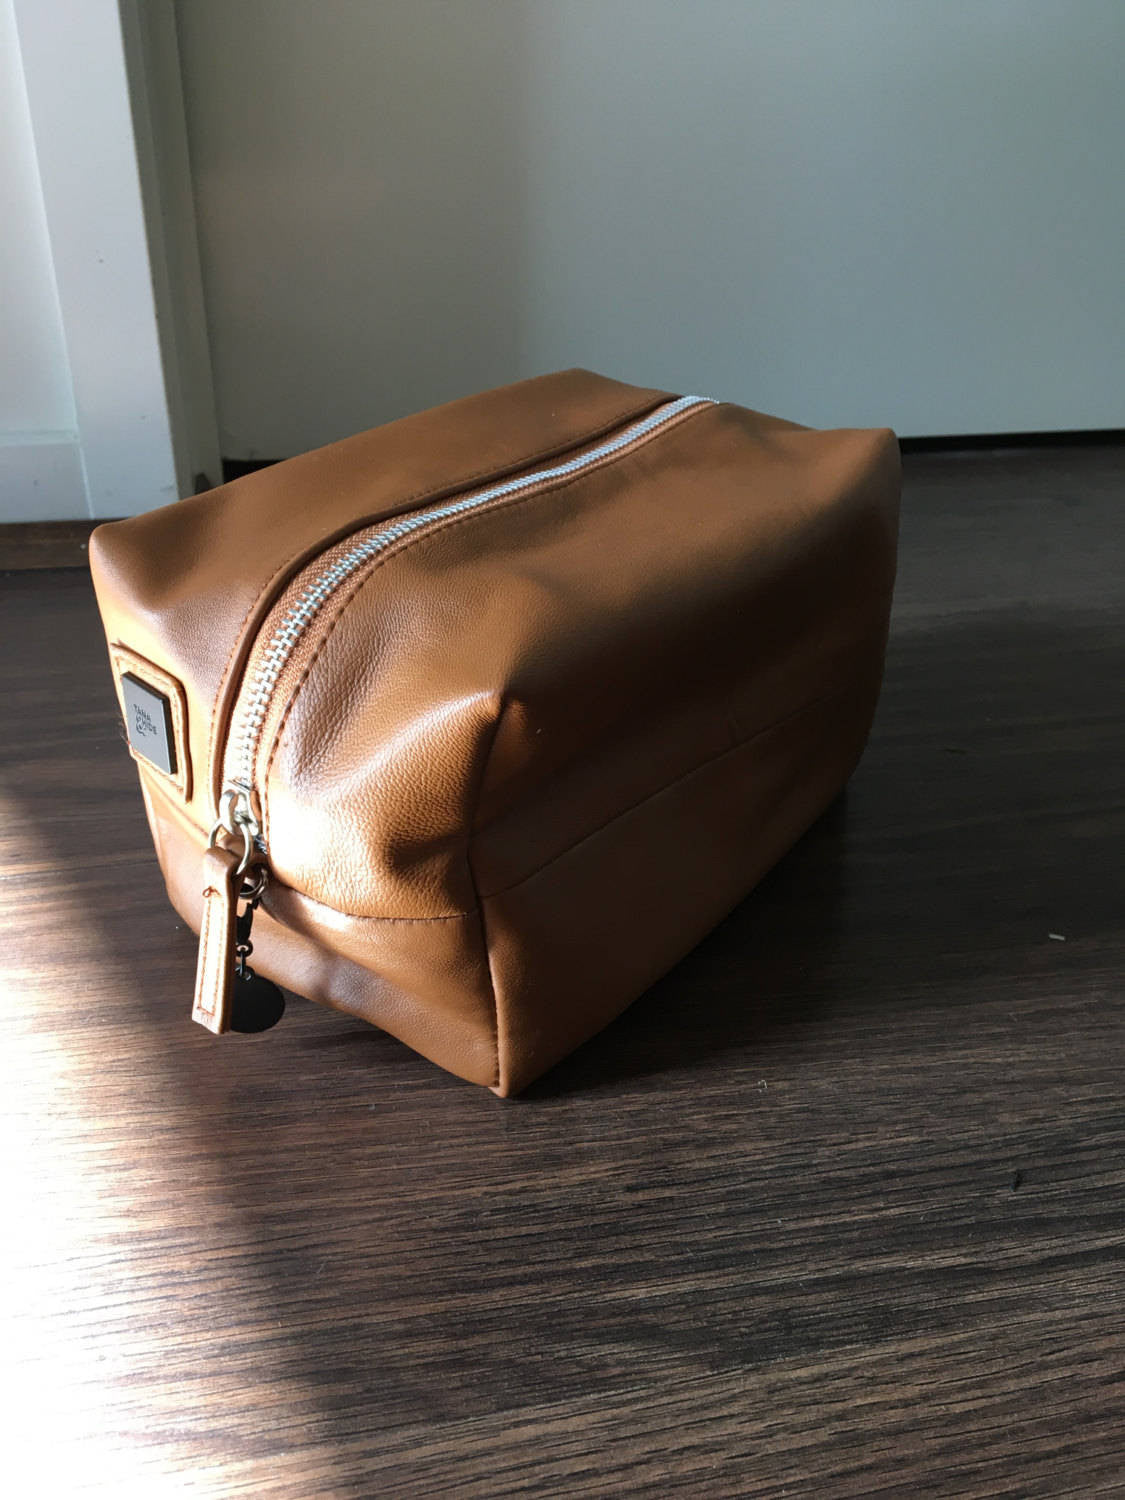 The Padre-Old School Mens Toiletry bag. Shaving bag.Best gift for the gentleman that has everything.